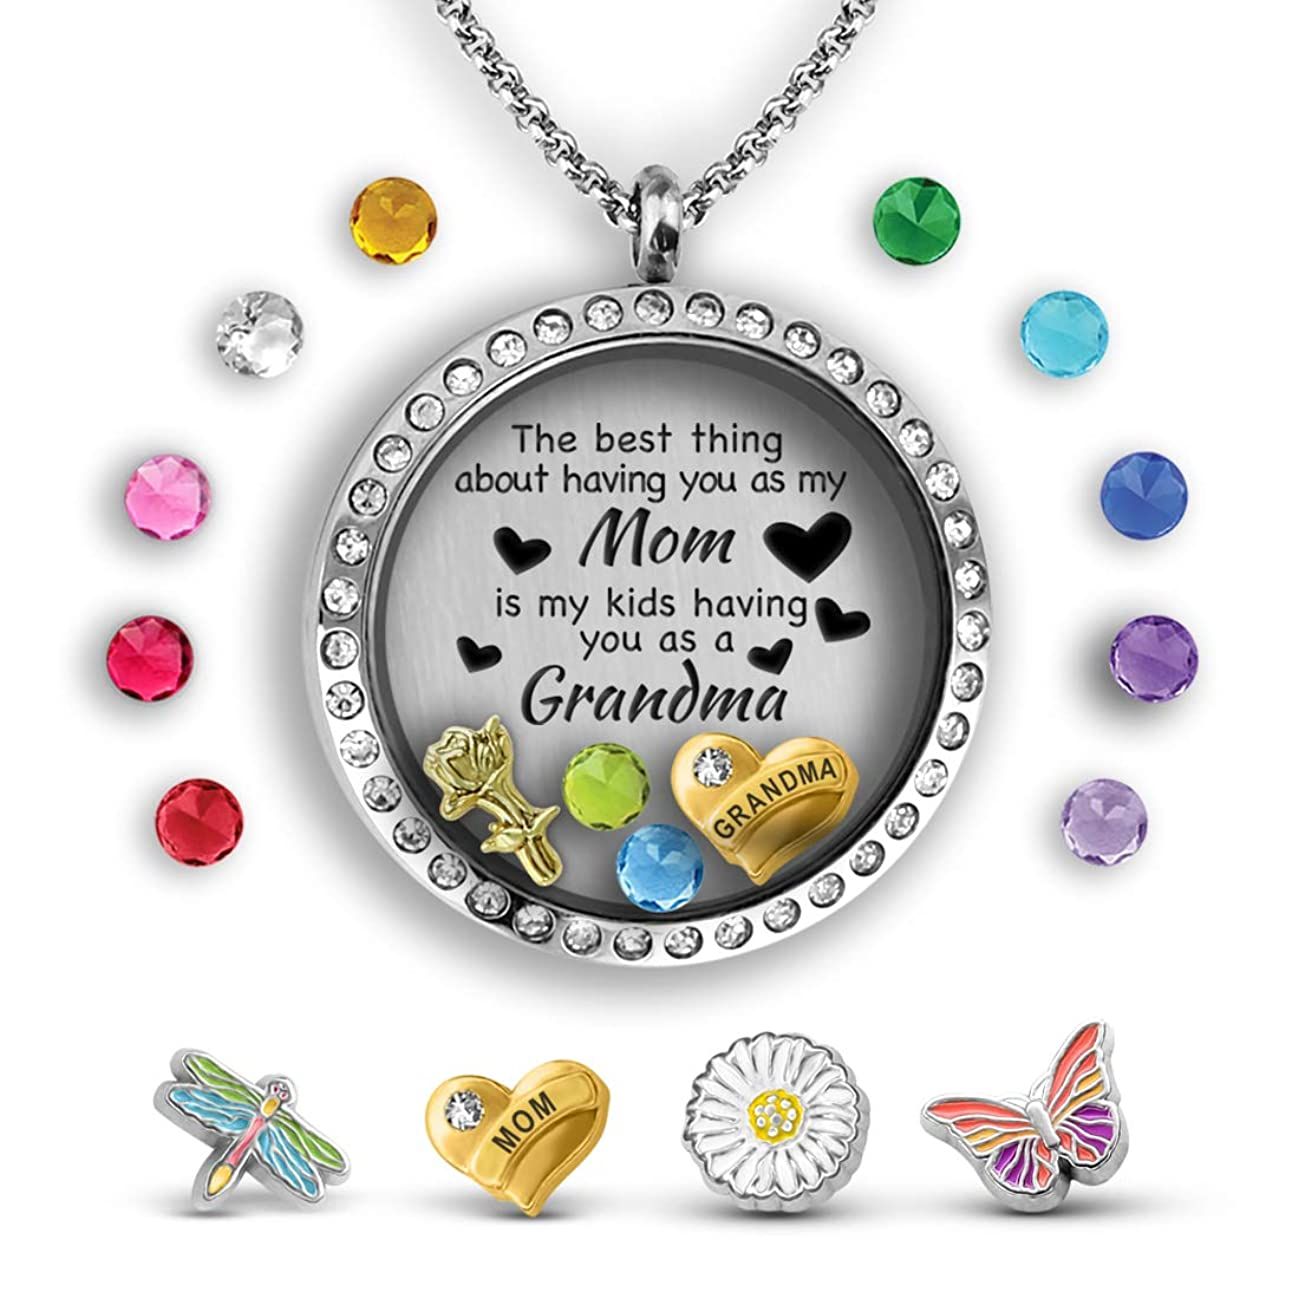 Grandma Gifts For Mothers Day For Mom From Daughter Mother Daughter Necklace Floating Locket Pendant Necklace Grandma Jewelry Gift For Mom From Daughter Best Gifts For Grandma Mom Necklaces For Women